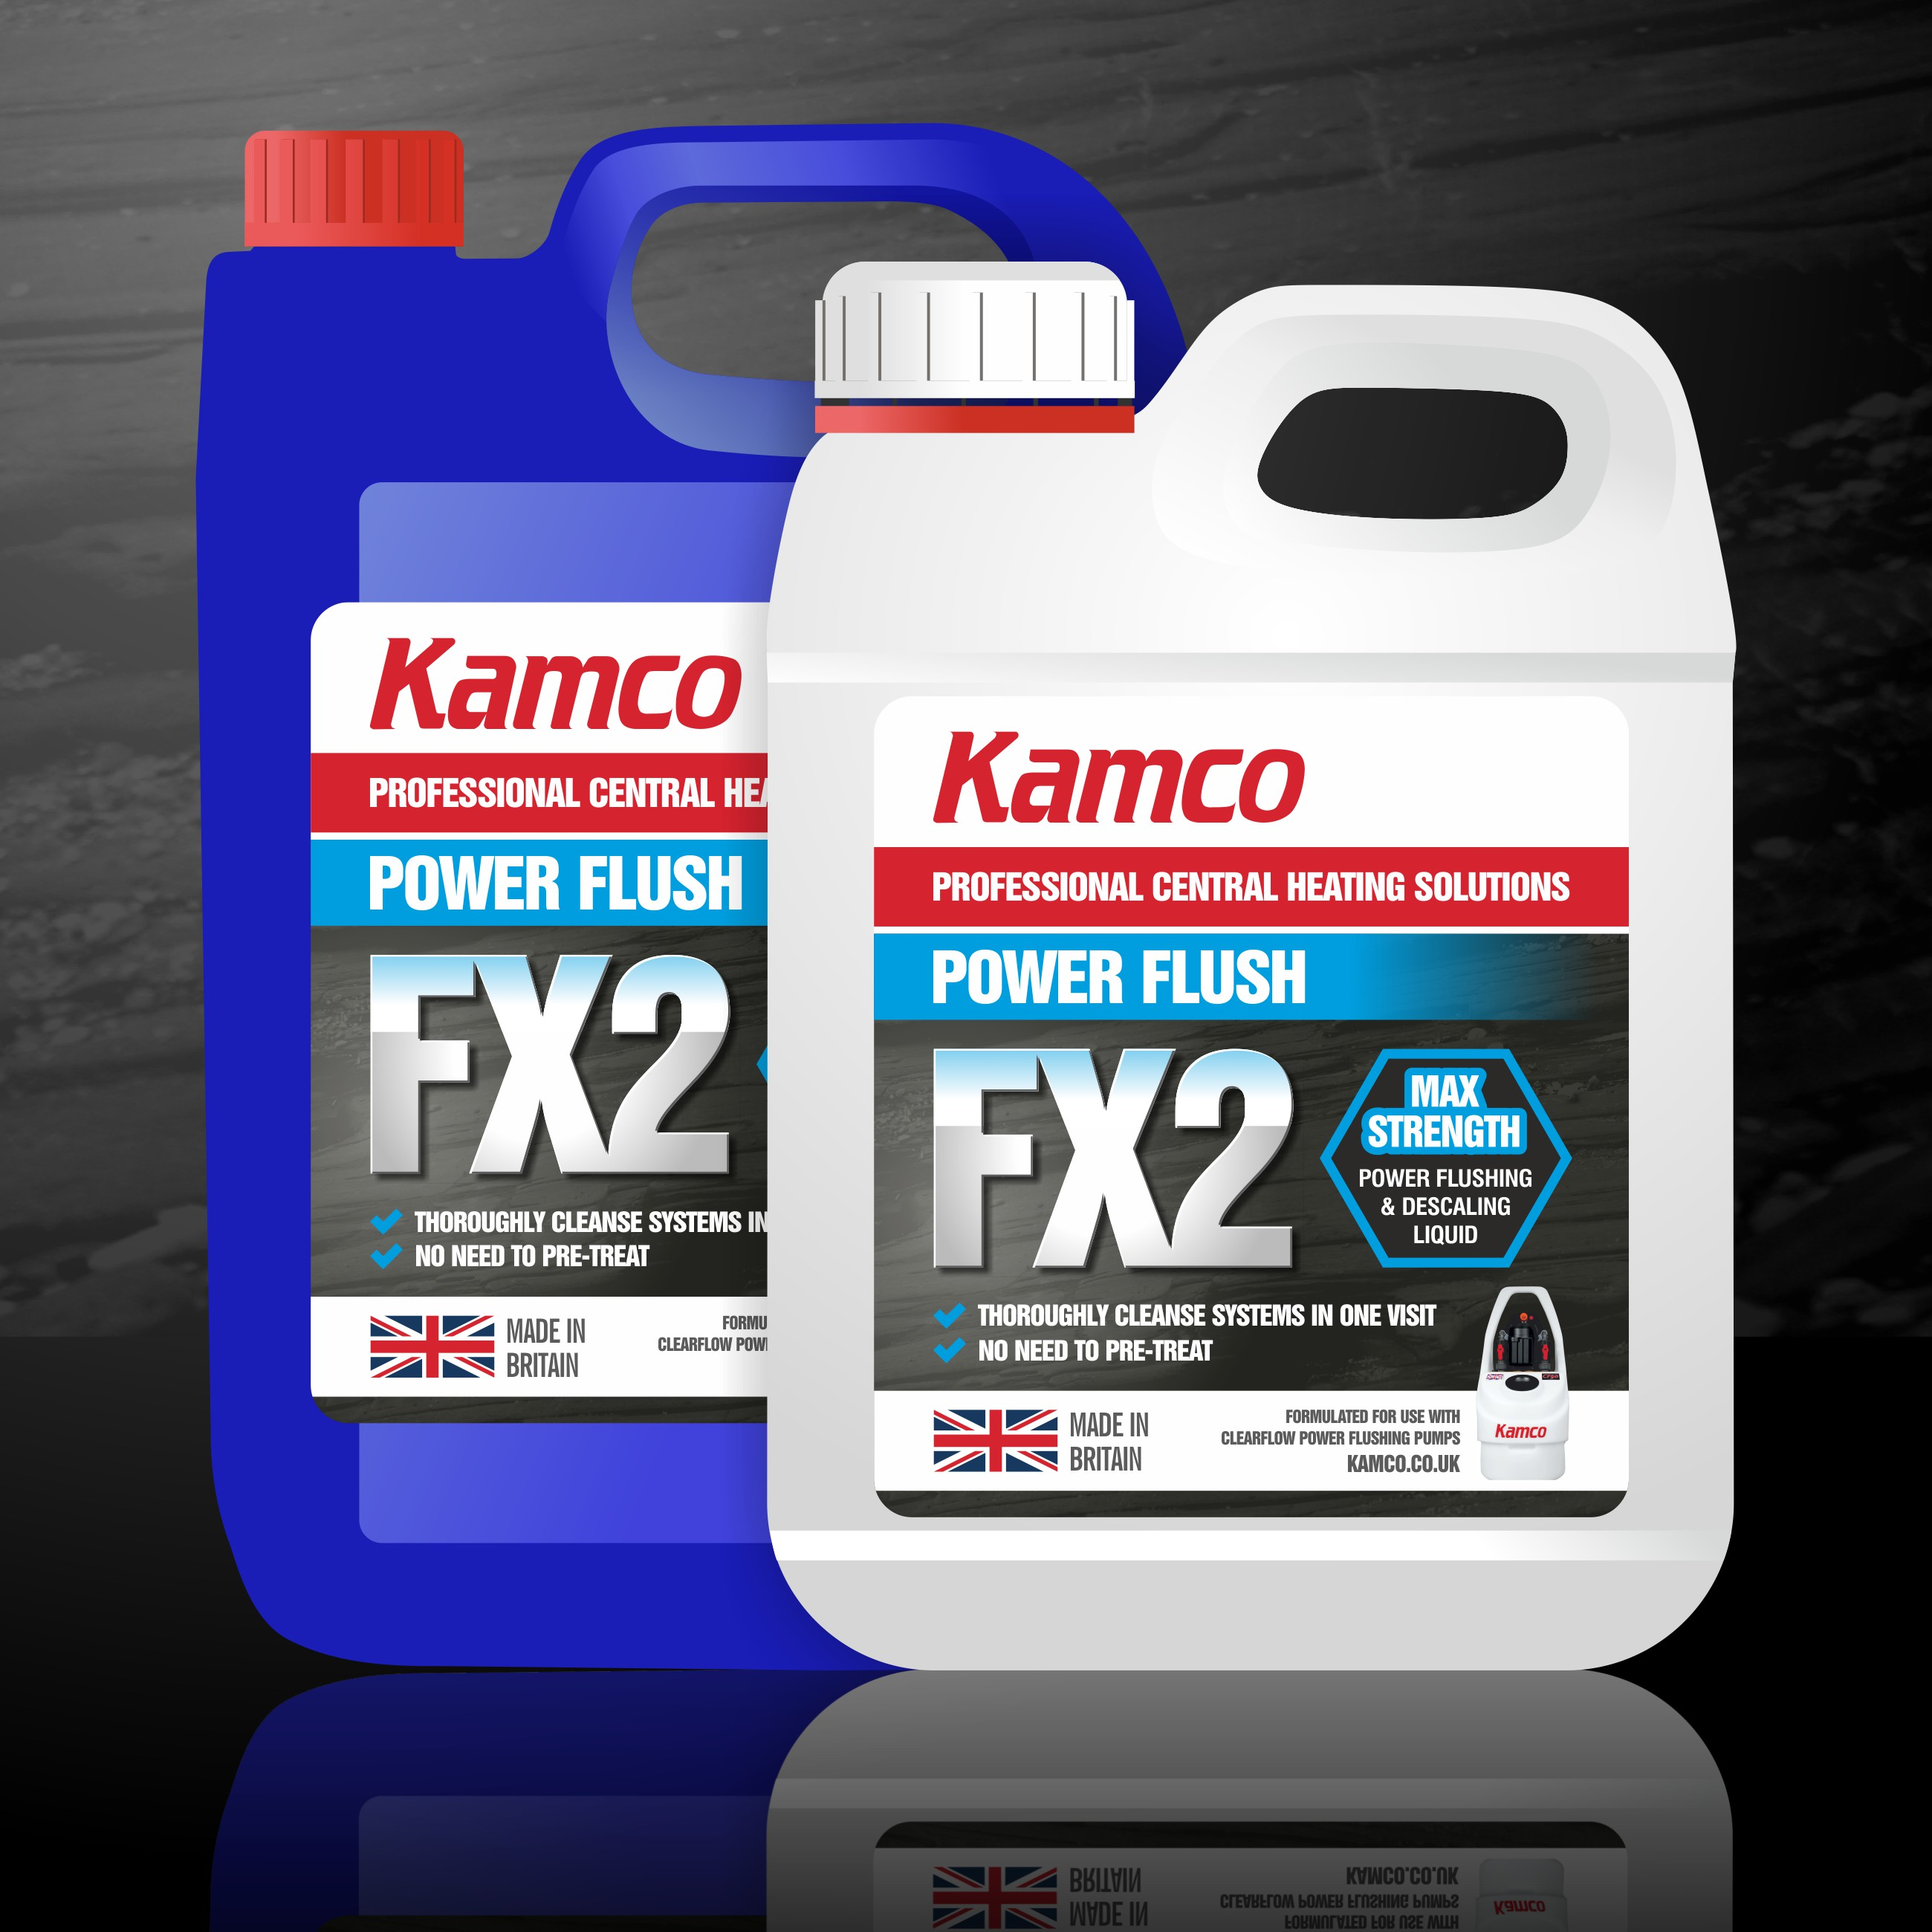 POWER FLUSH FX2